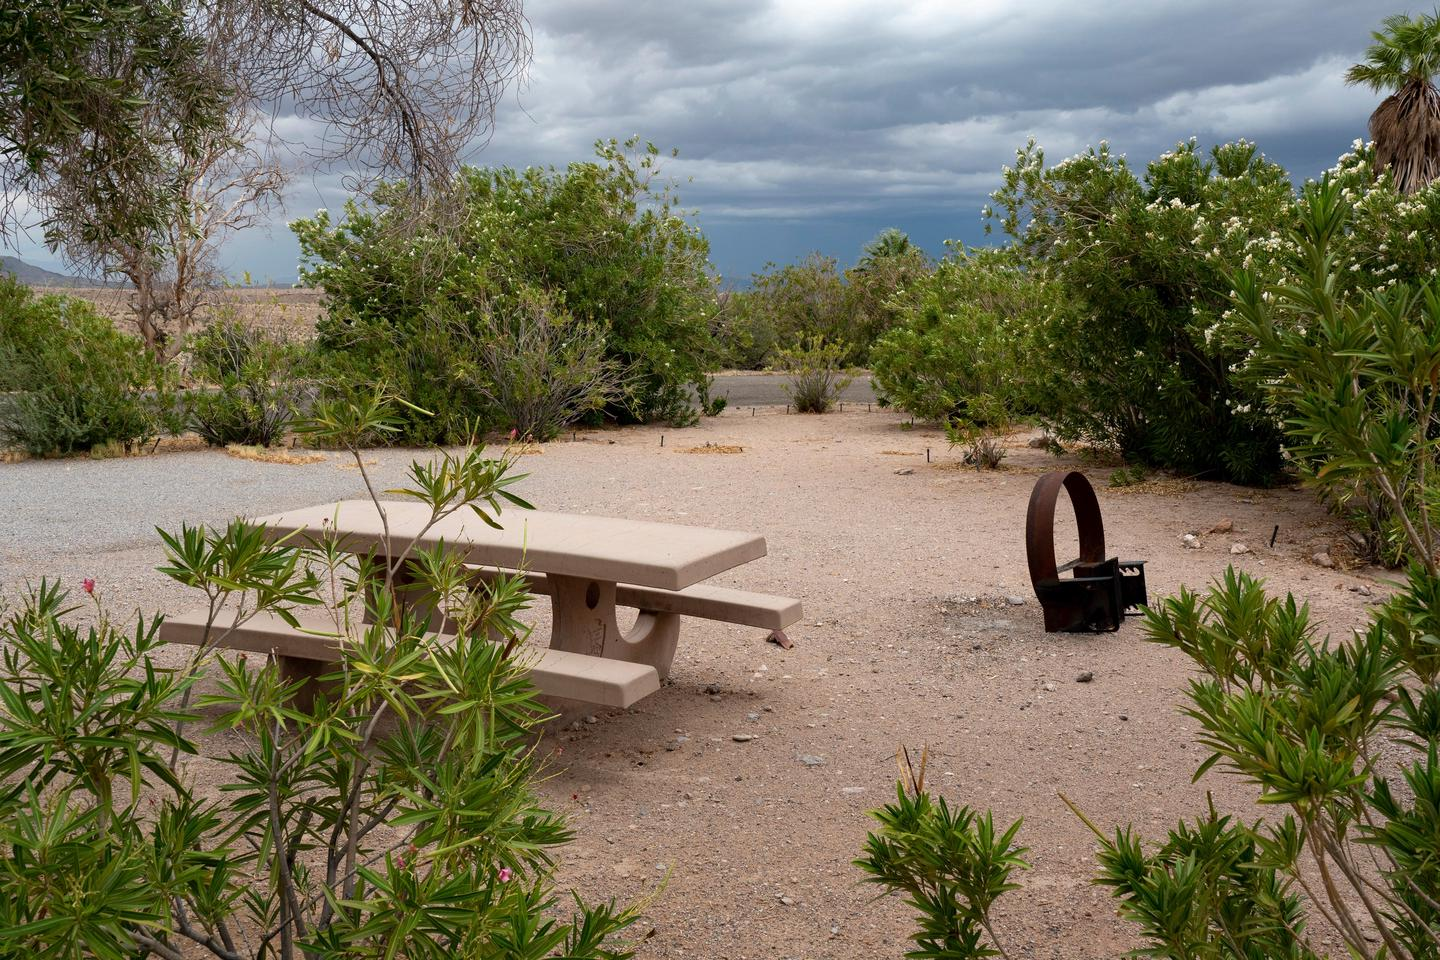 Preview photo of Echo Bay Campground